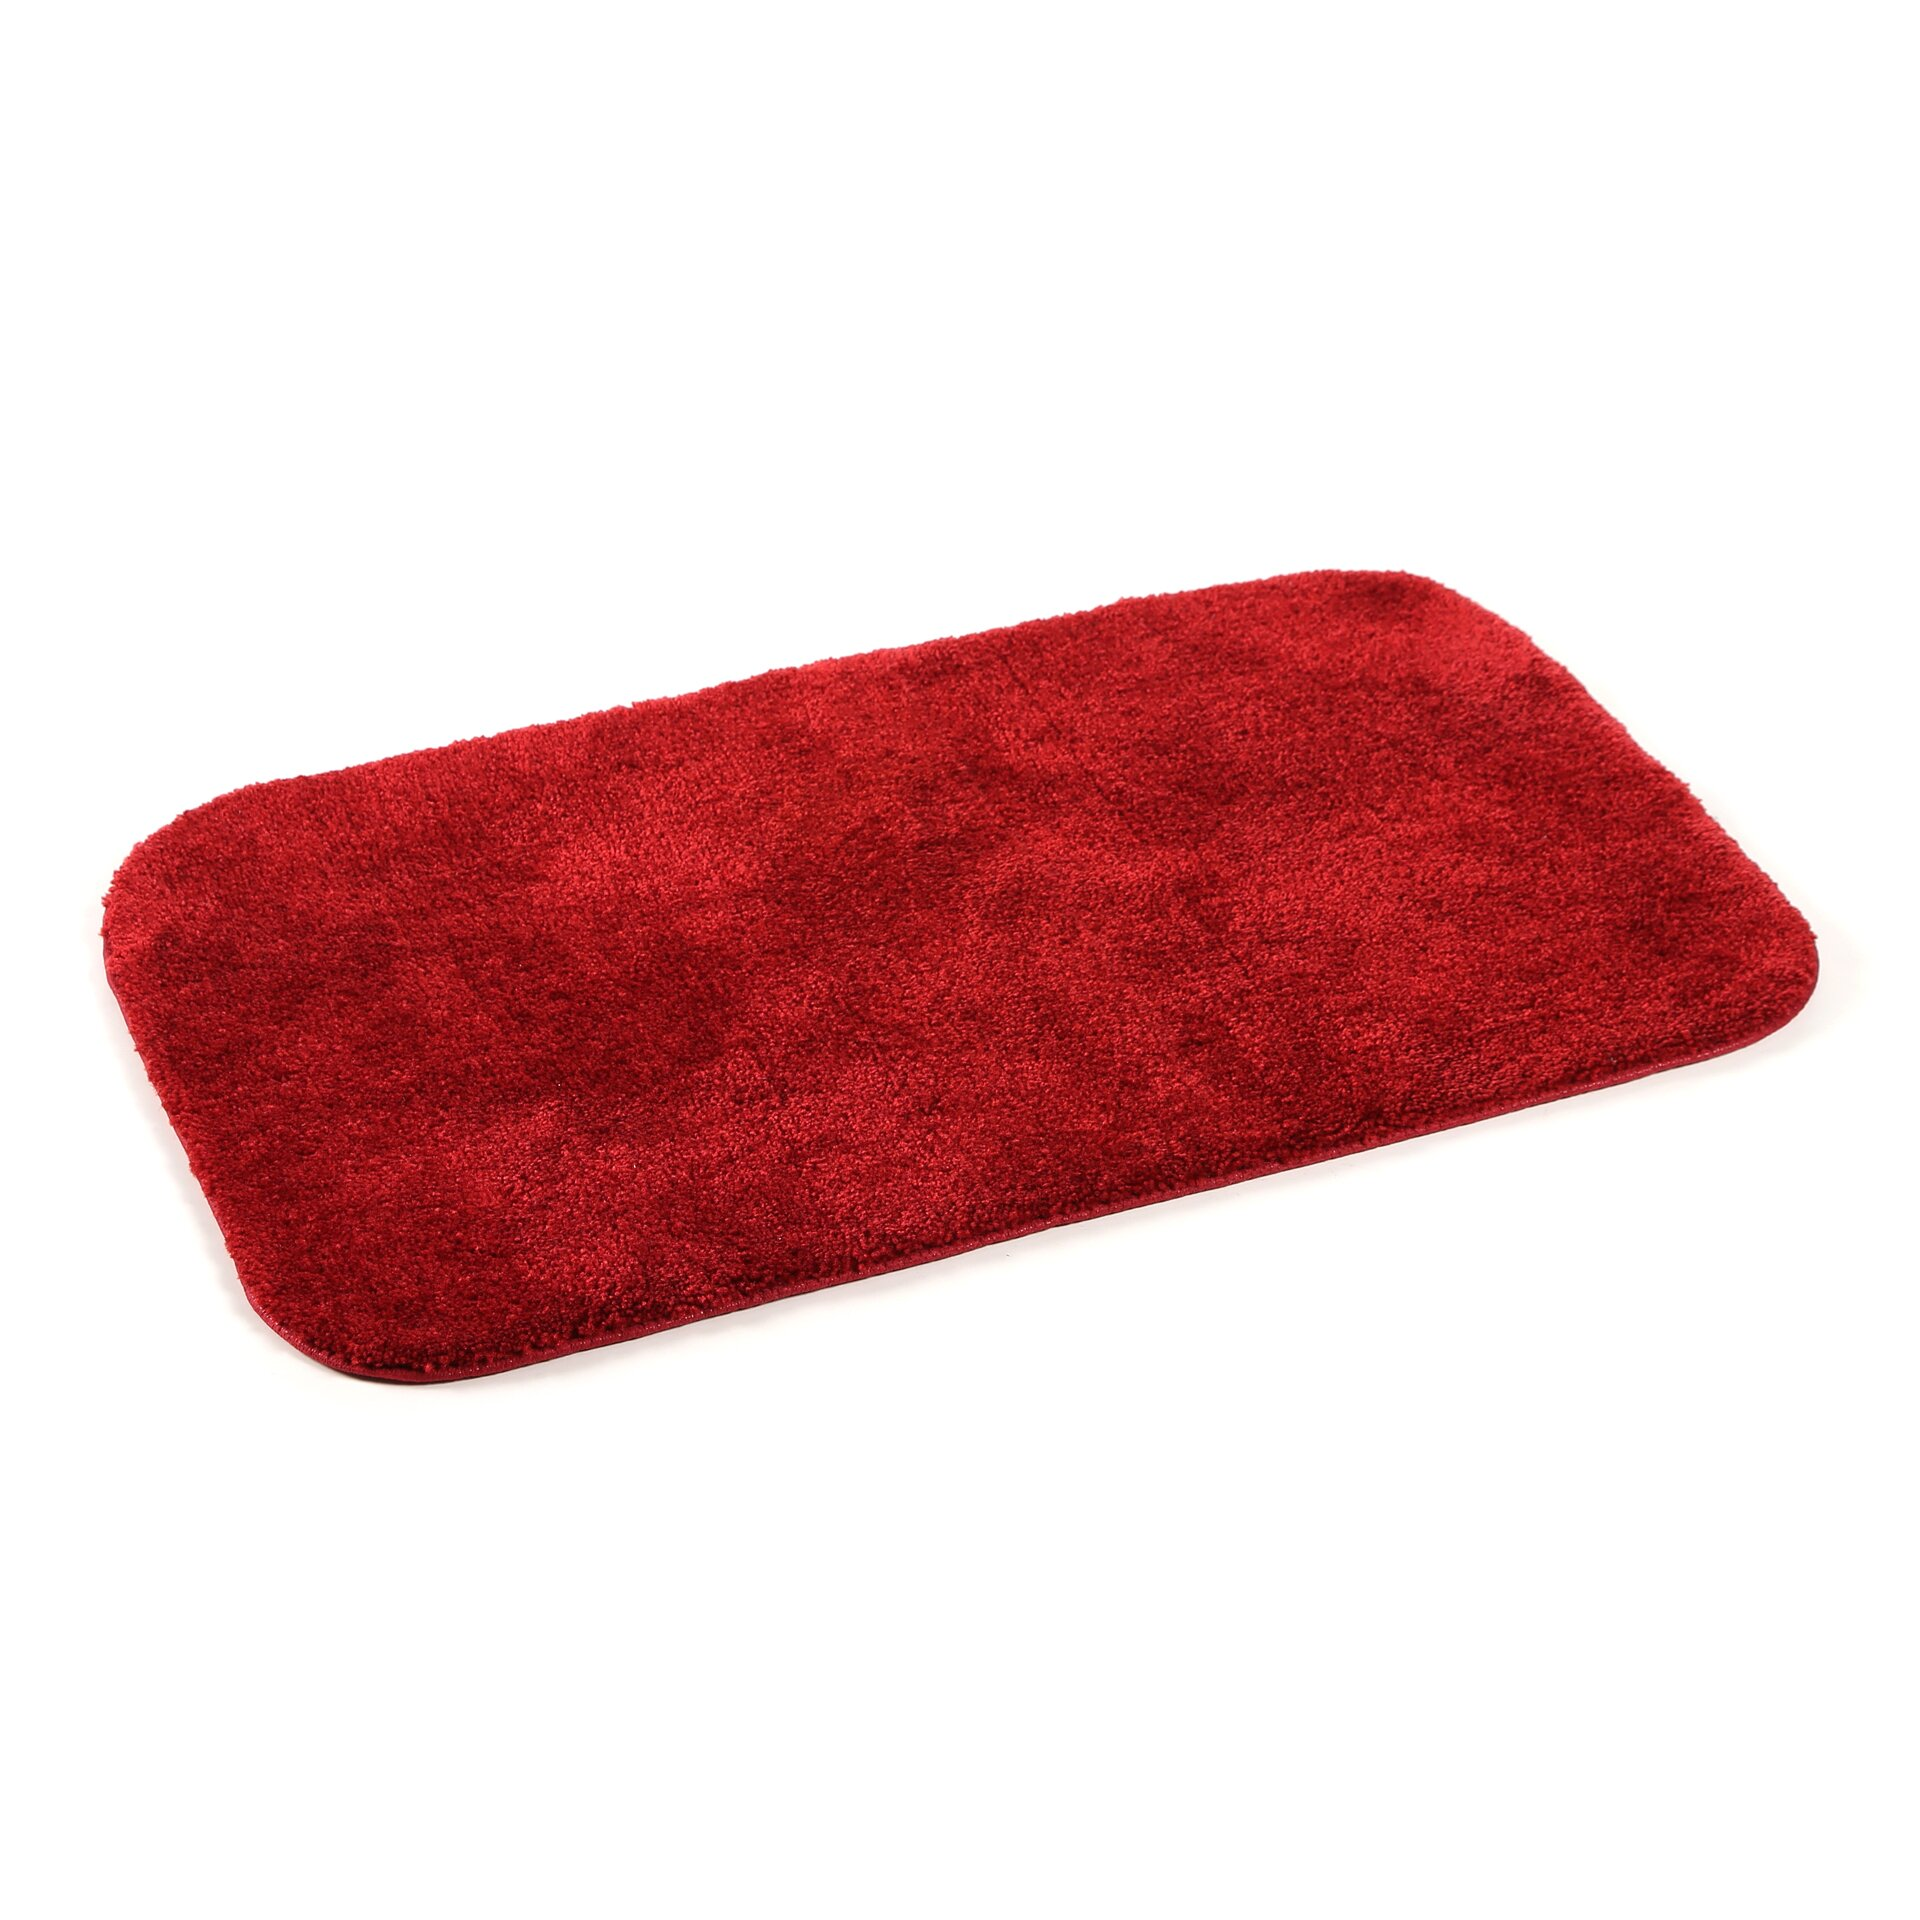 Charlton Home Stanley 2 Piece Red Bath Rug Set & Reviews